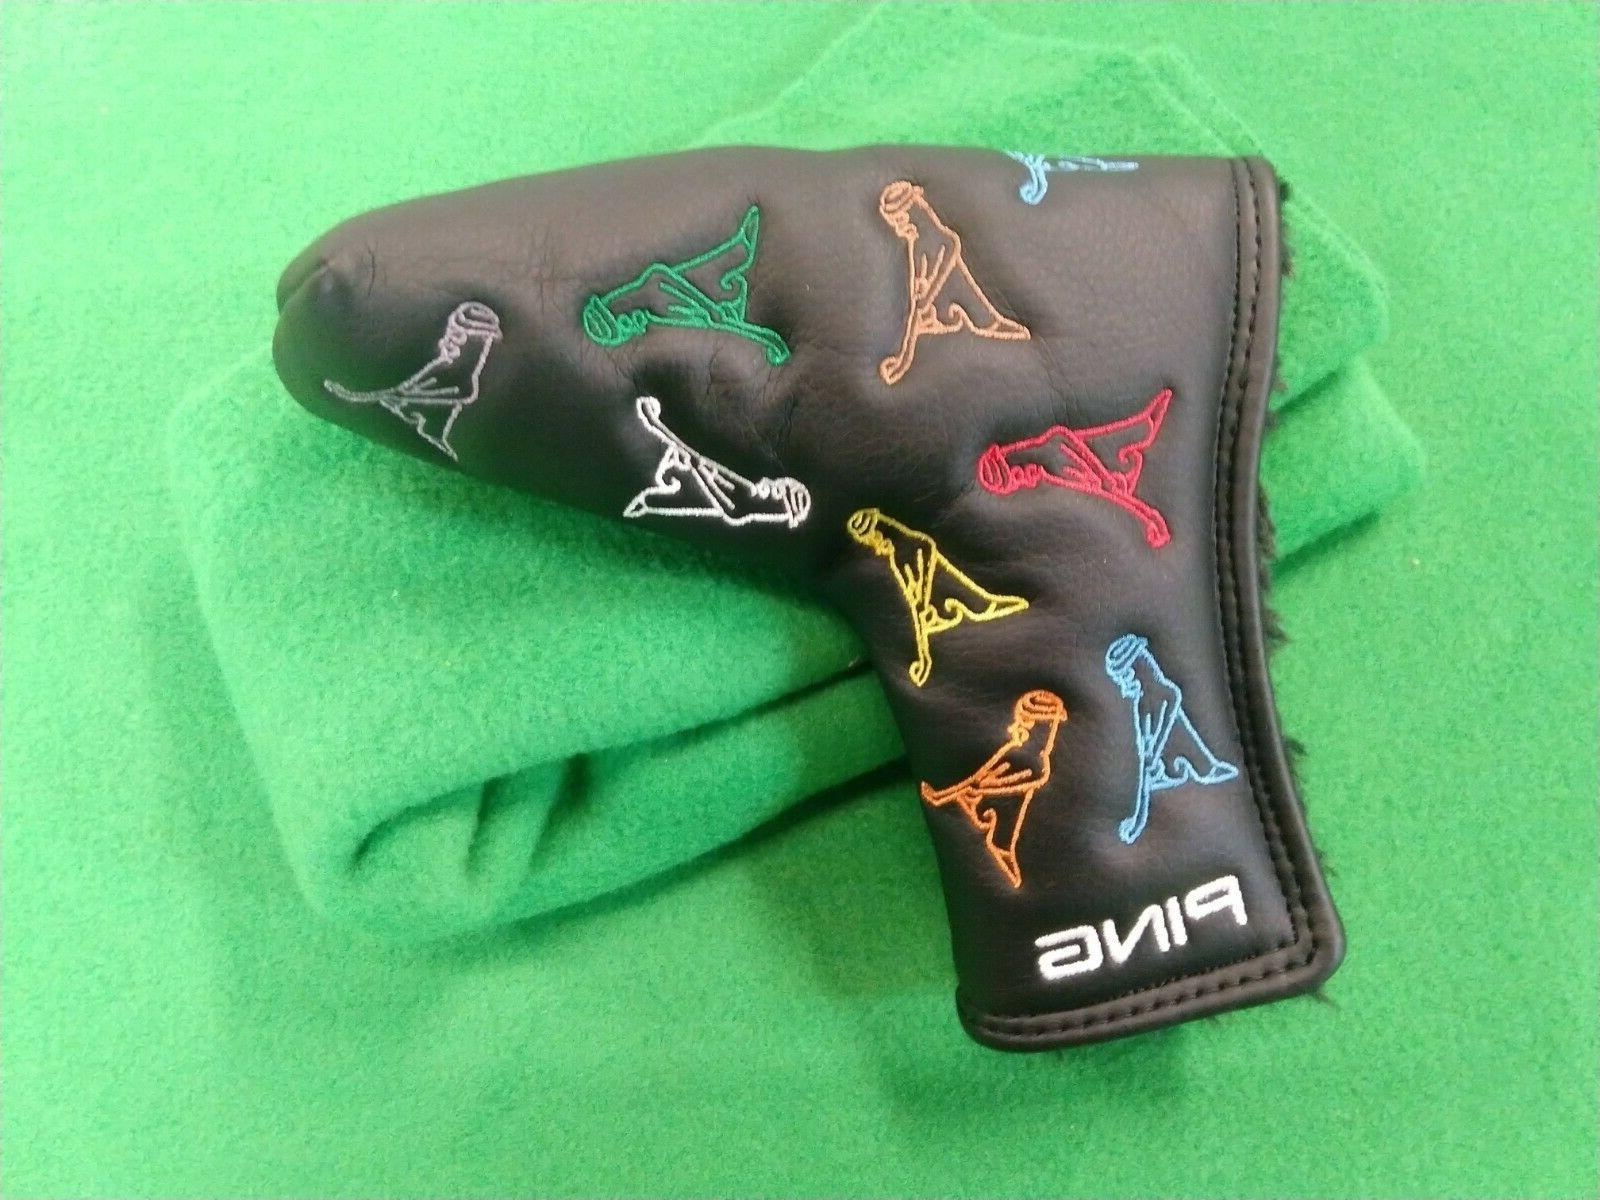 new mr blade putter headcover magnetic head